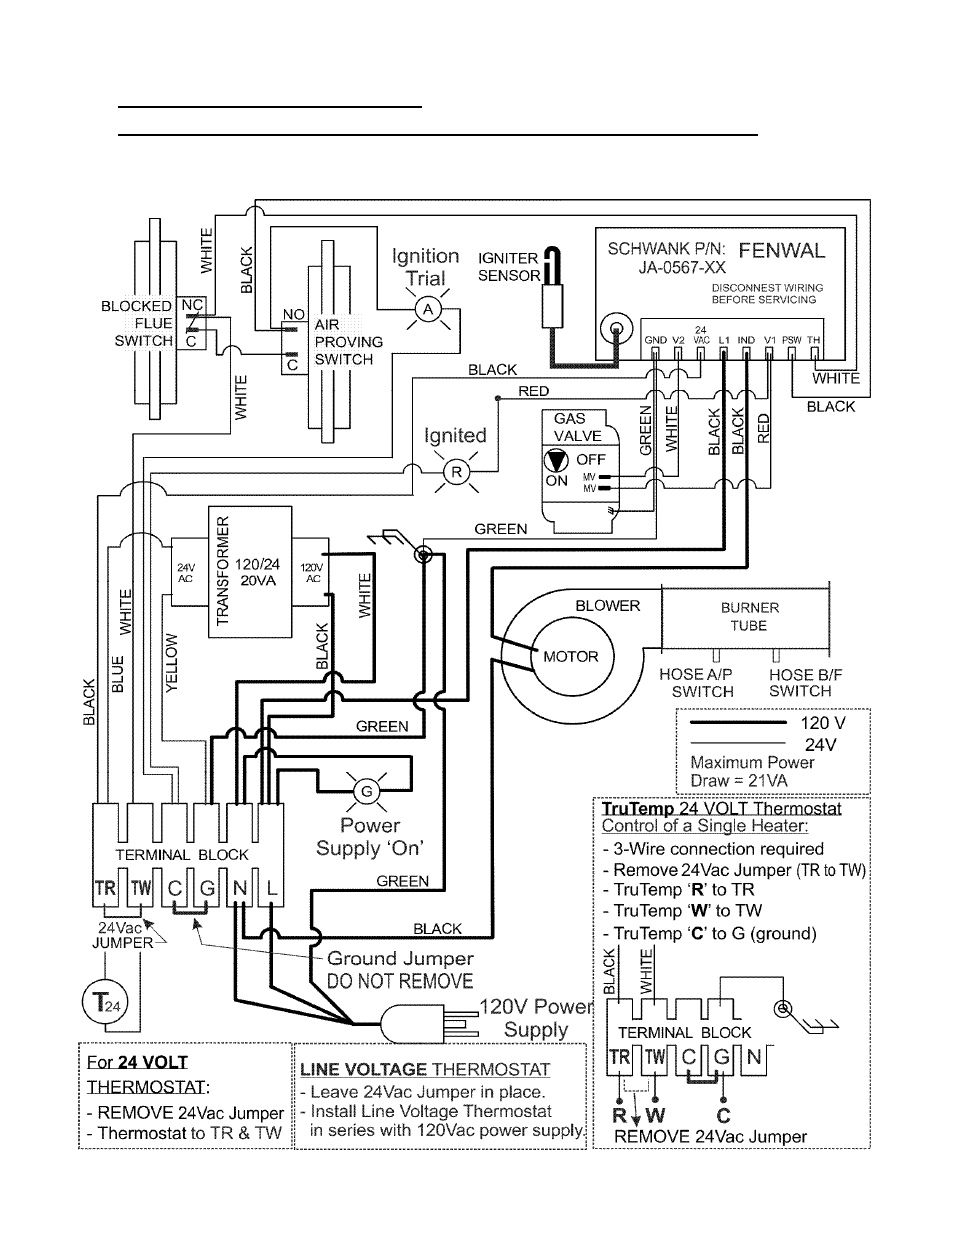 Fenwal Dsi Schwank Compactschwank P40 R User Manual Page 29 53 24vac Thermostat Wiring Diagrams